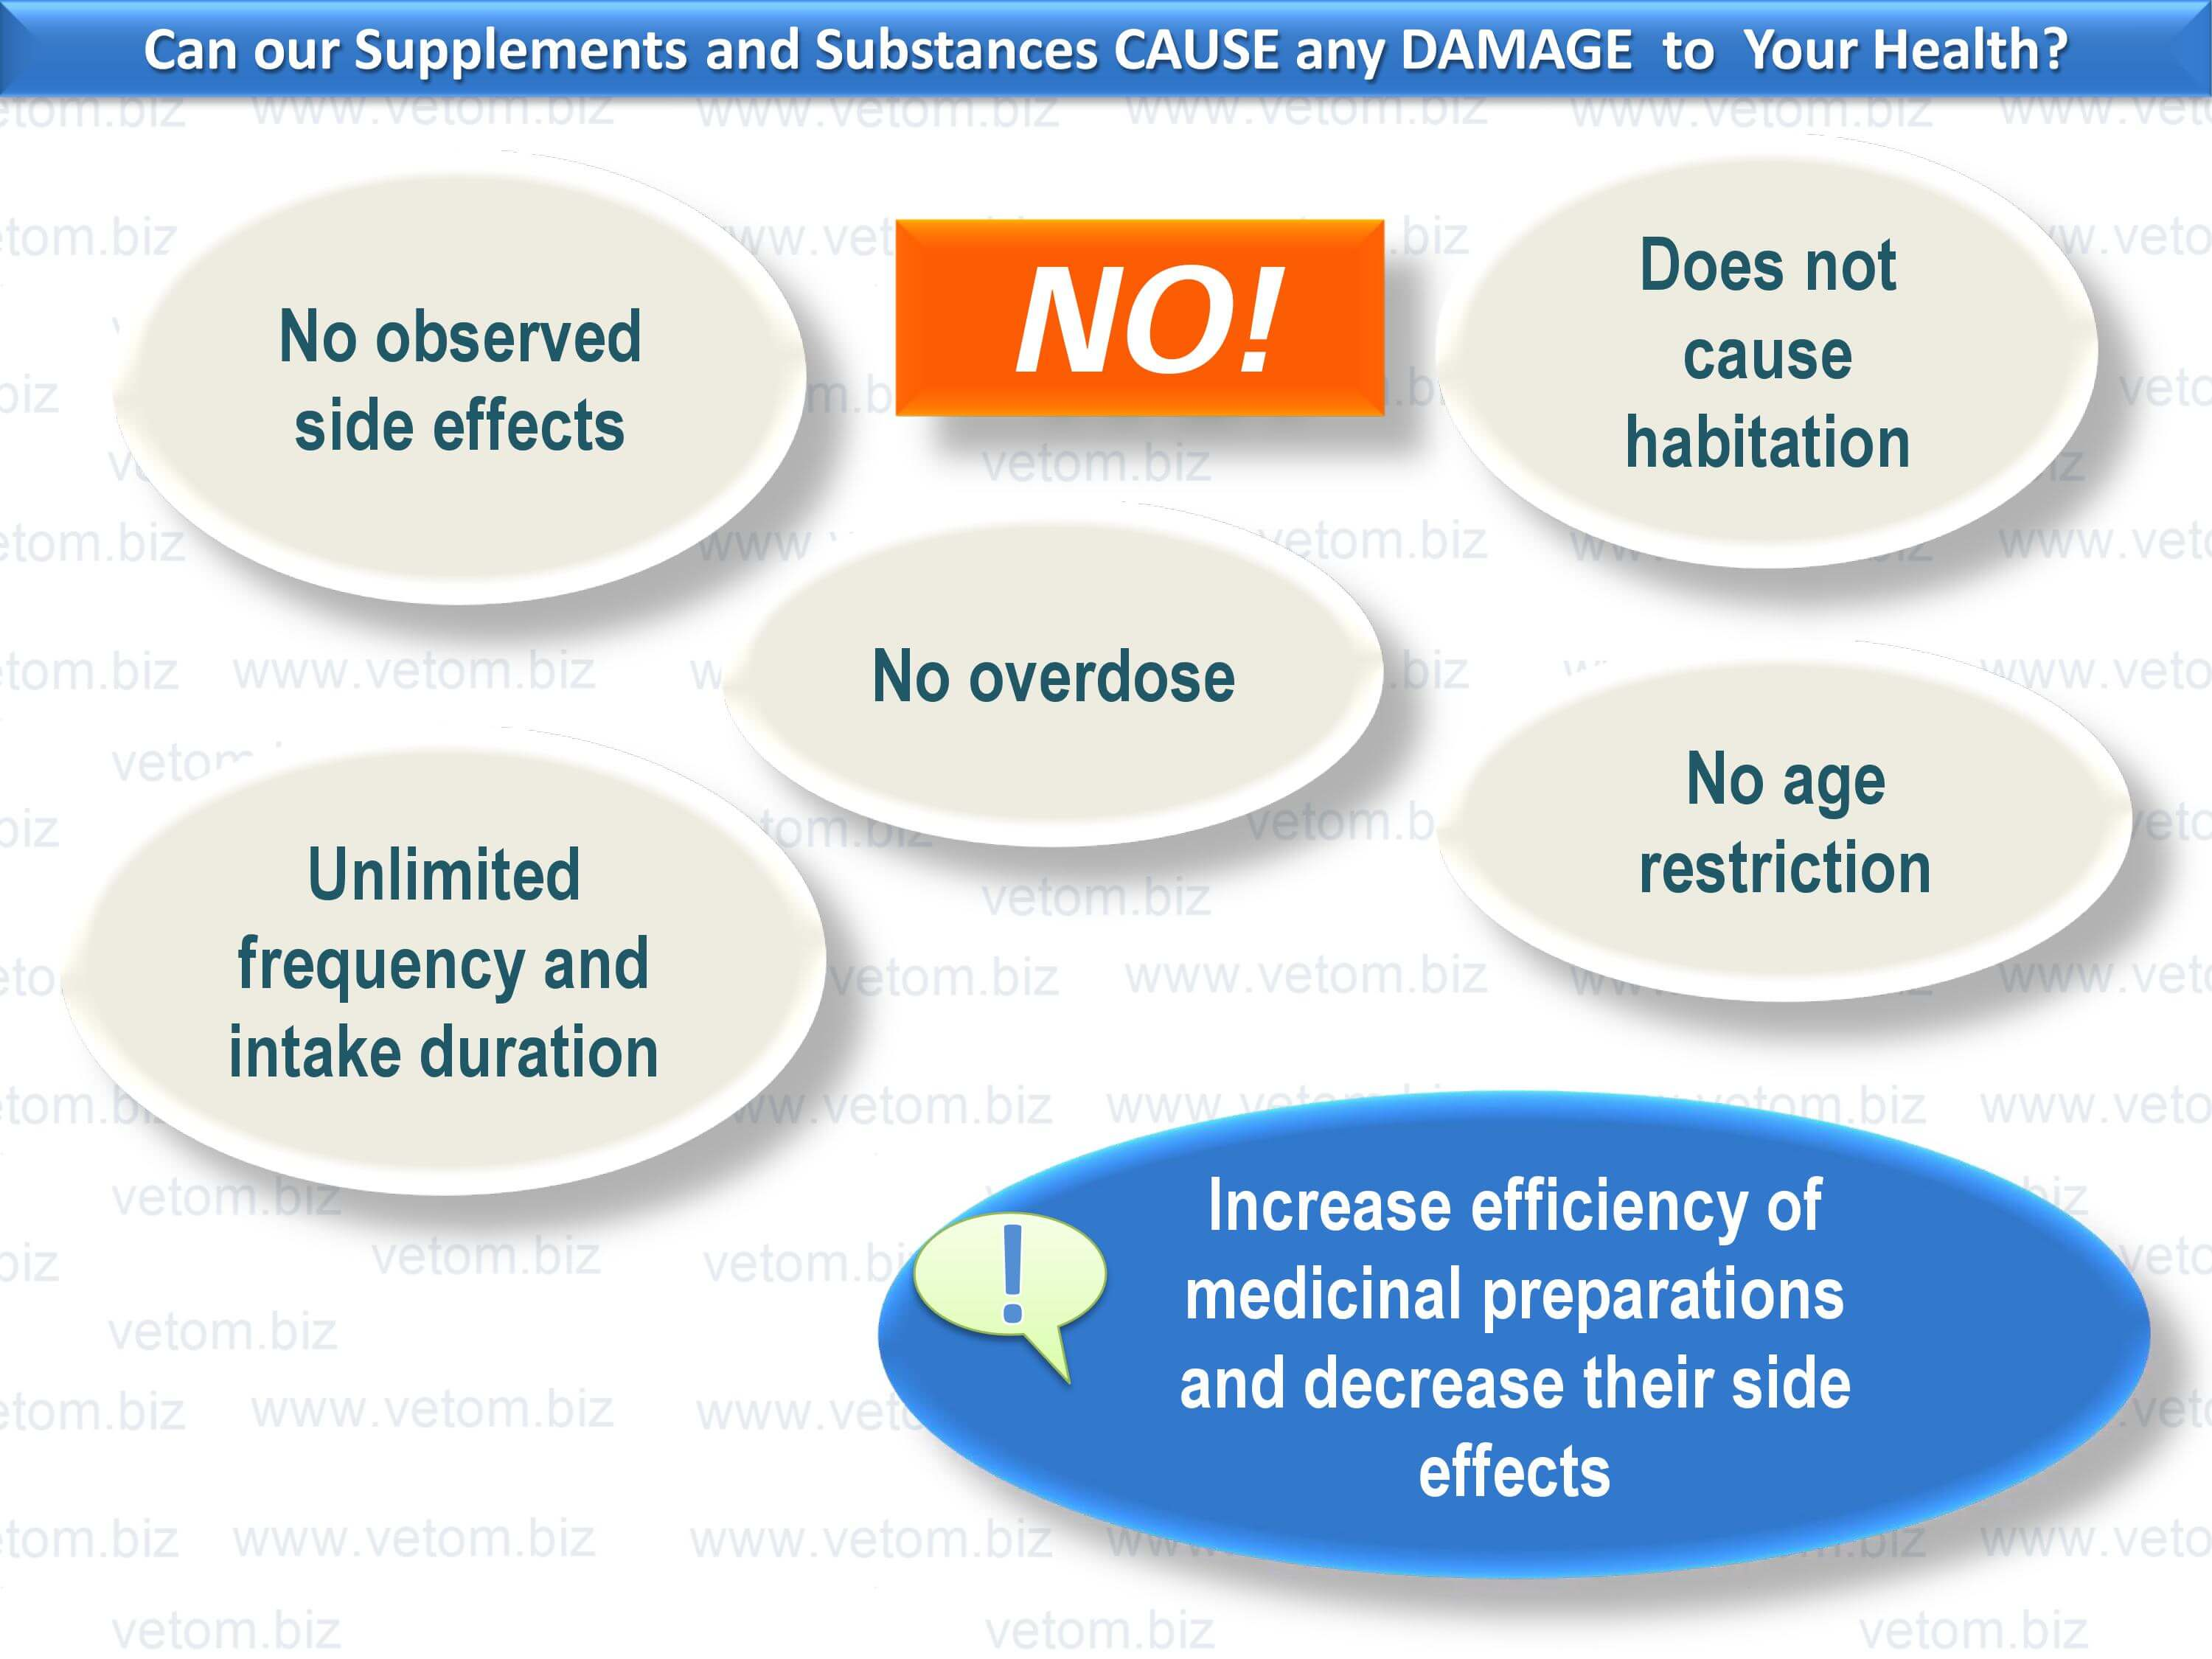 Can supplements and substances of the Vetom line cause any damage to health? No.